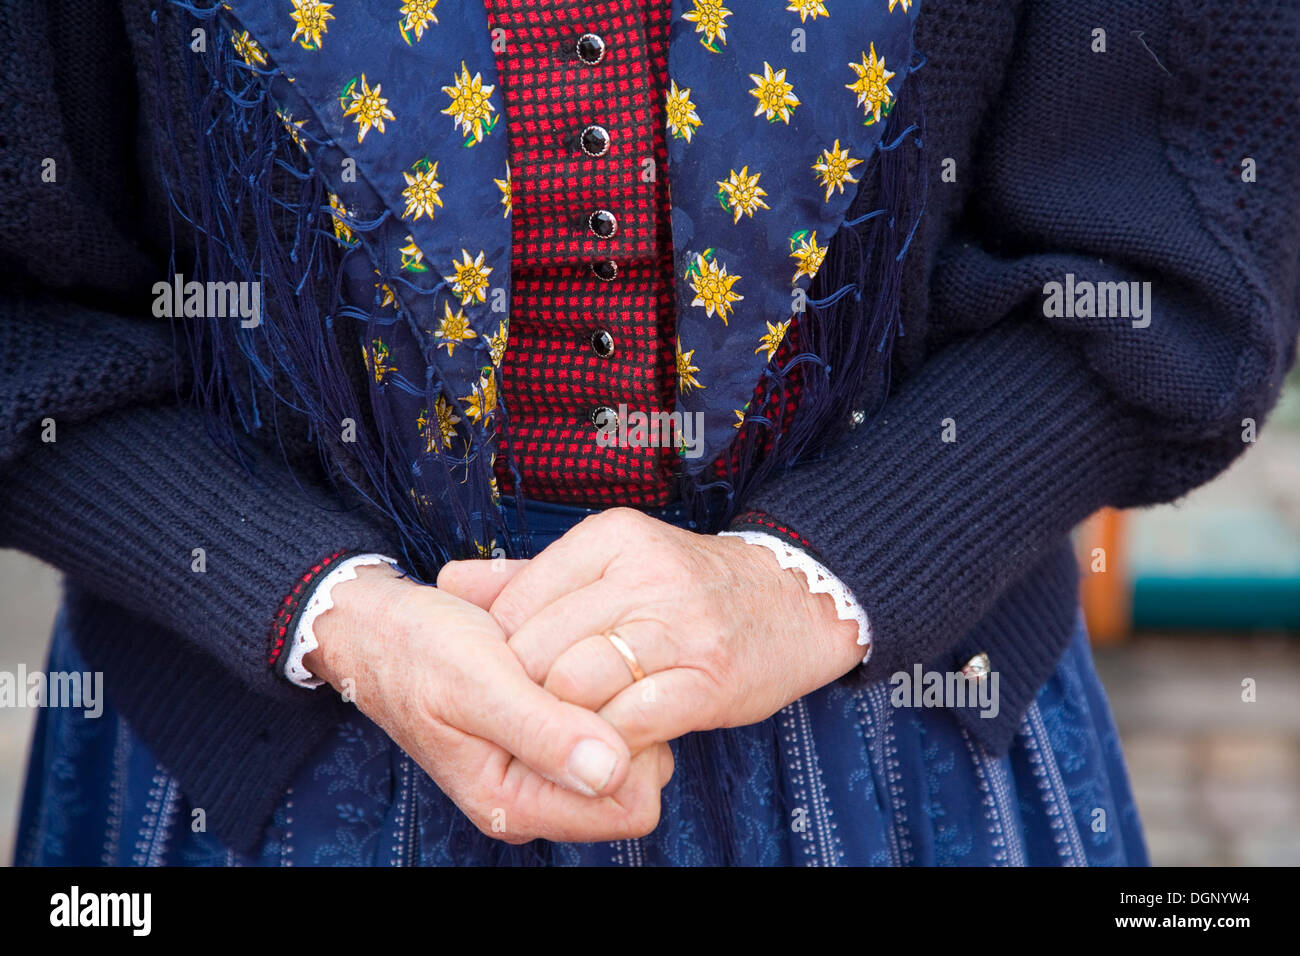 Traditional costume in South Tyrol, Italy, Europe - Stock Image